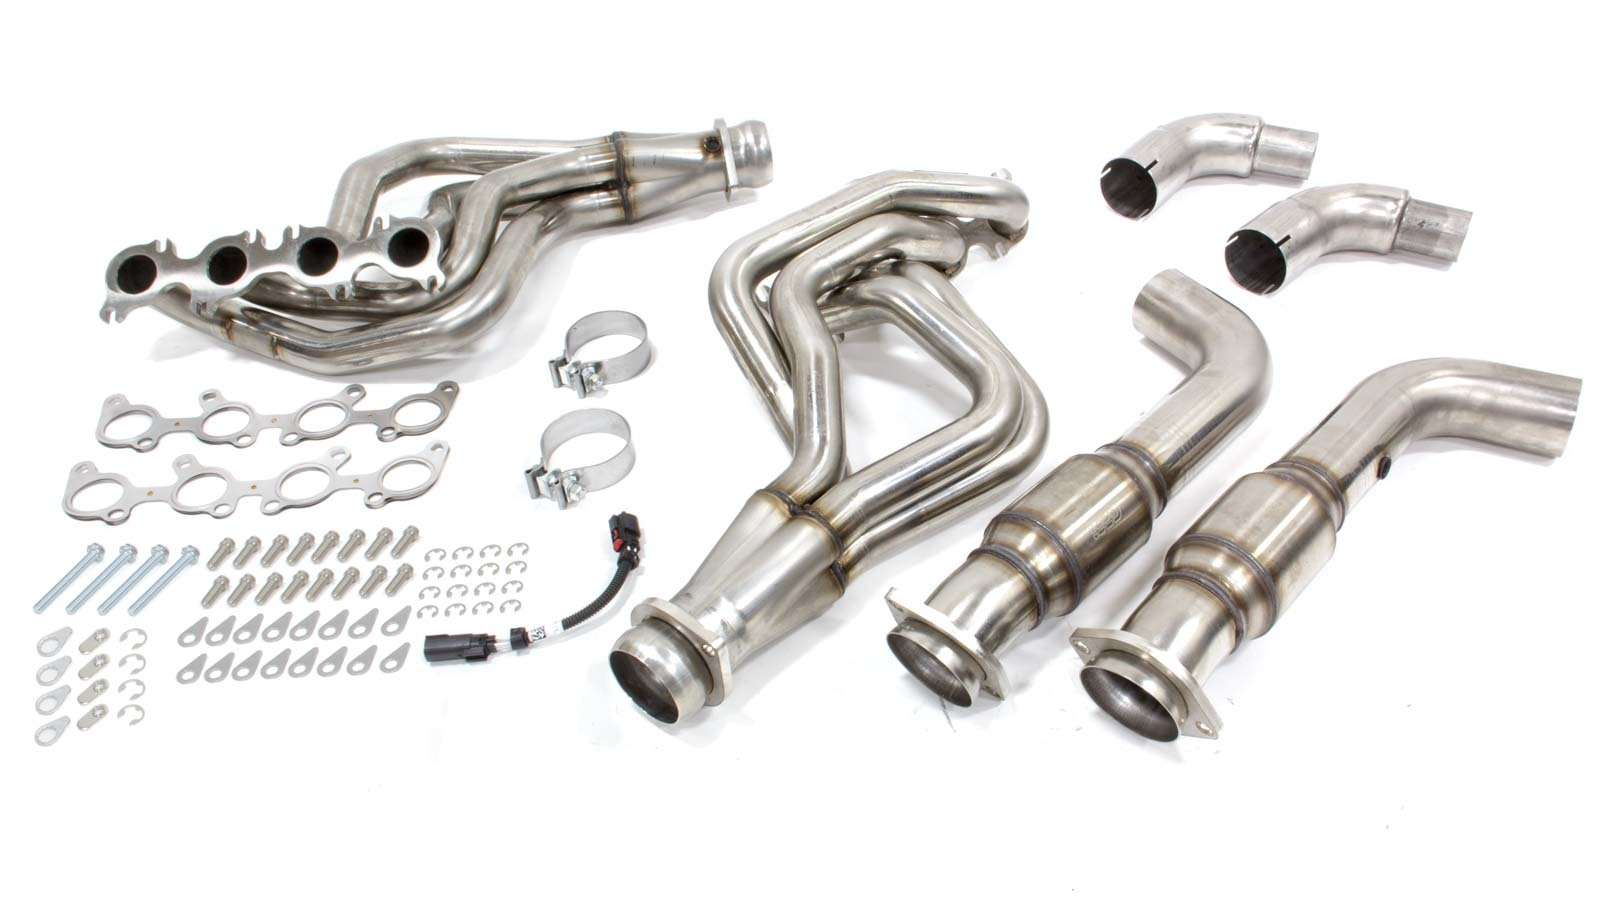 Kooks Headers 1151H230 Headers, Long Tube, 1-3/4 in Primary, 3 in Collector, Stainless, Natural, Ford Coyote, Ford Mustang 2015-17, Kit